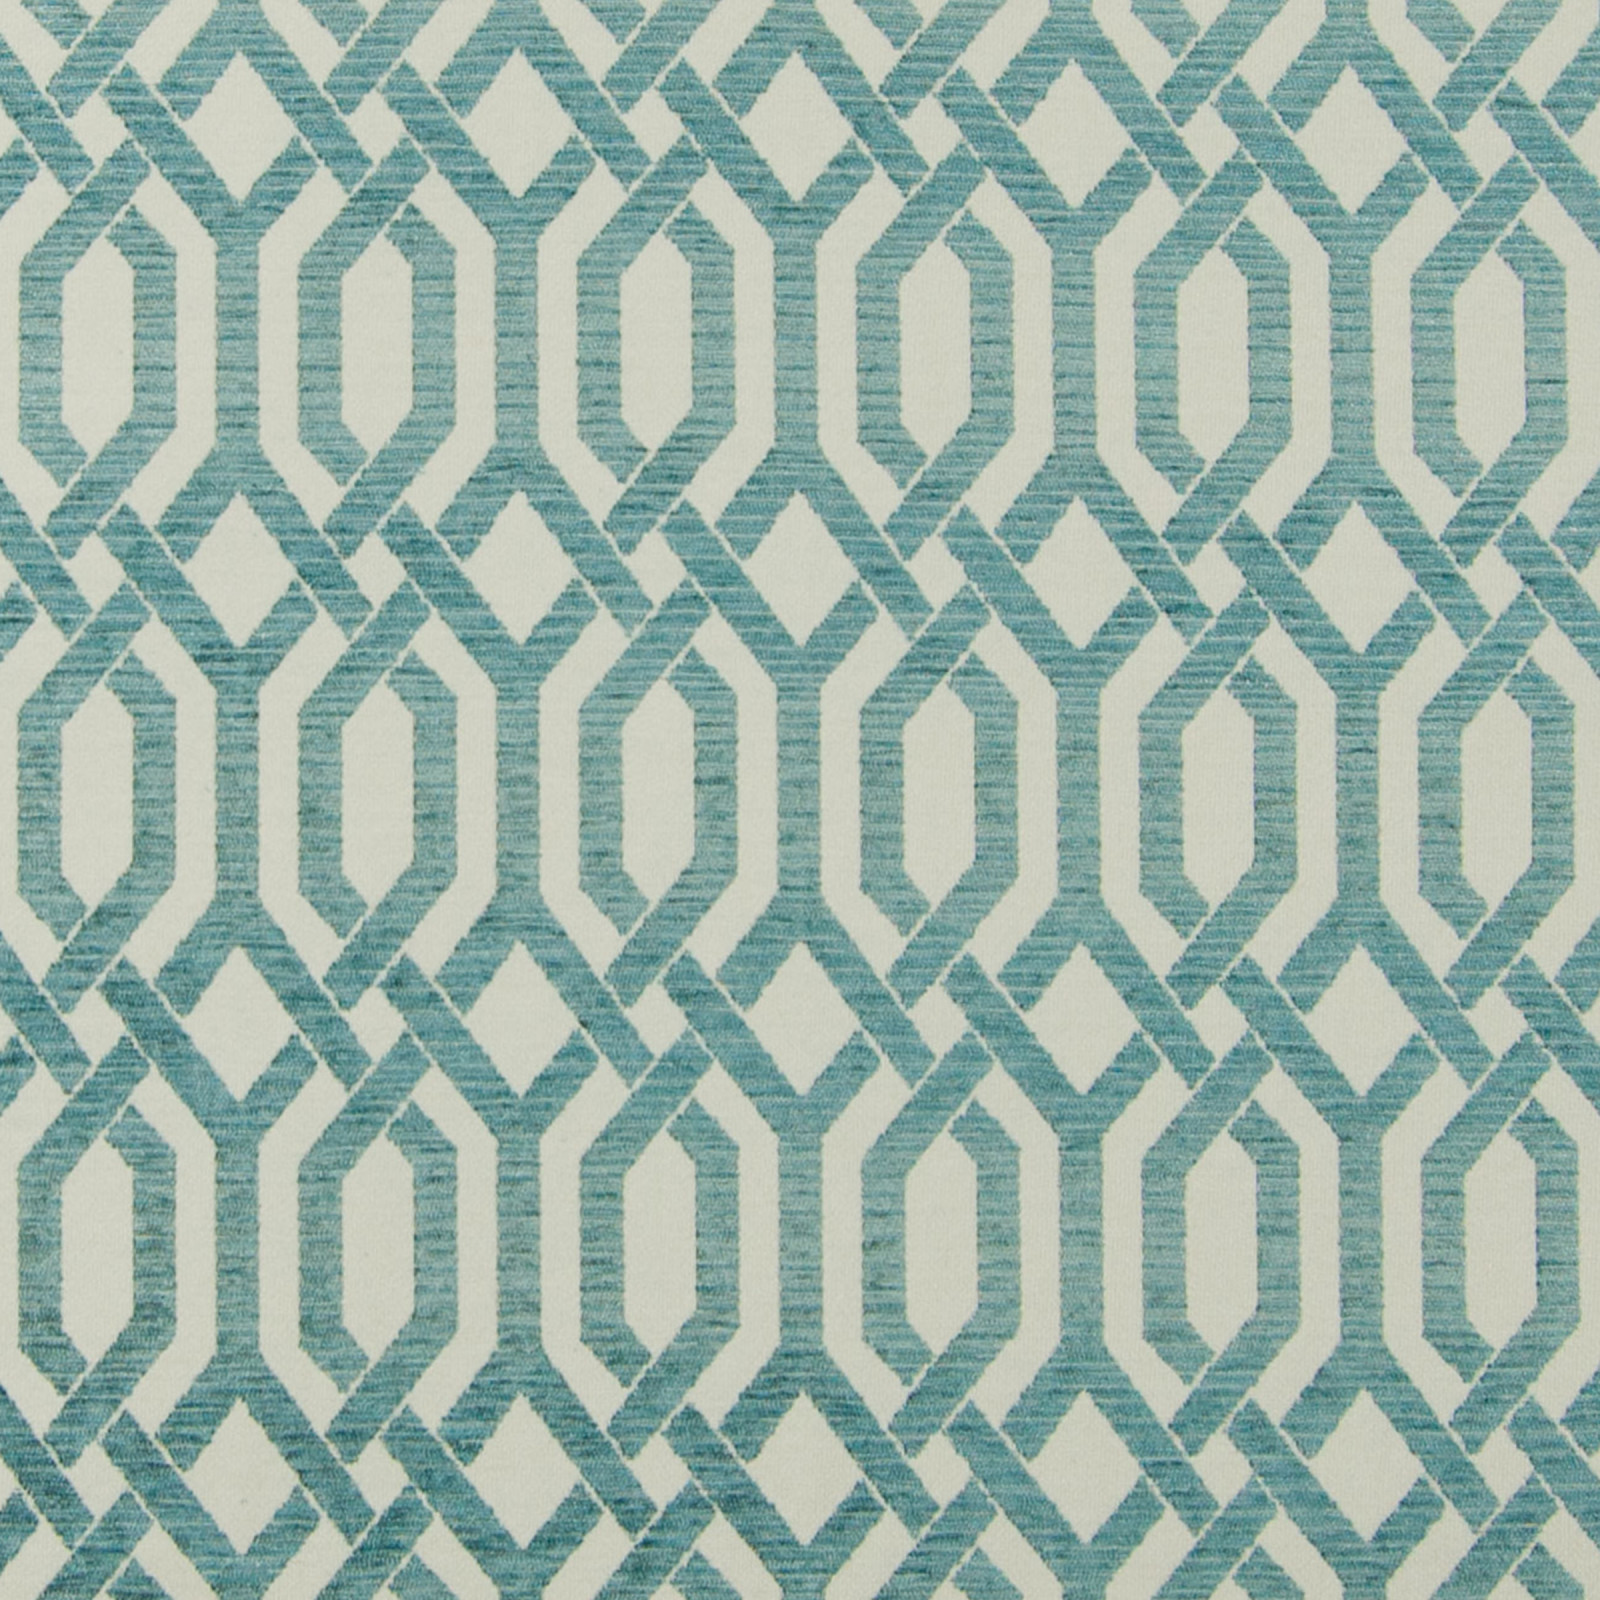 Turquoise Blue And Teal Geometric Woven Upholstery Fabric